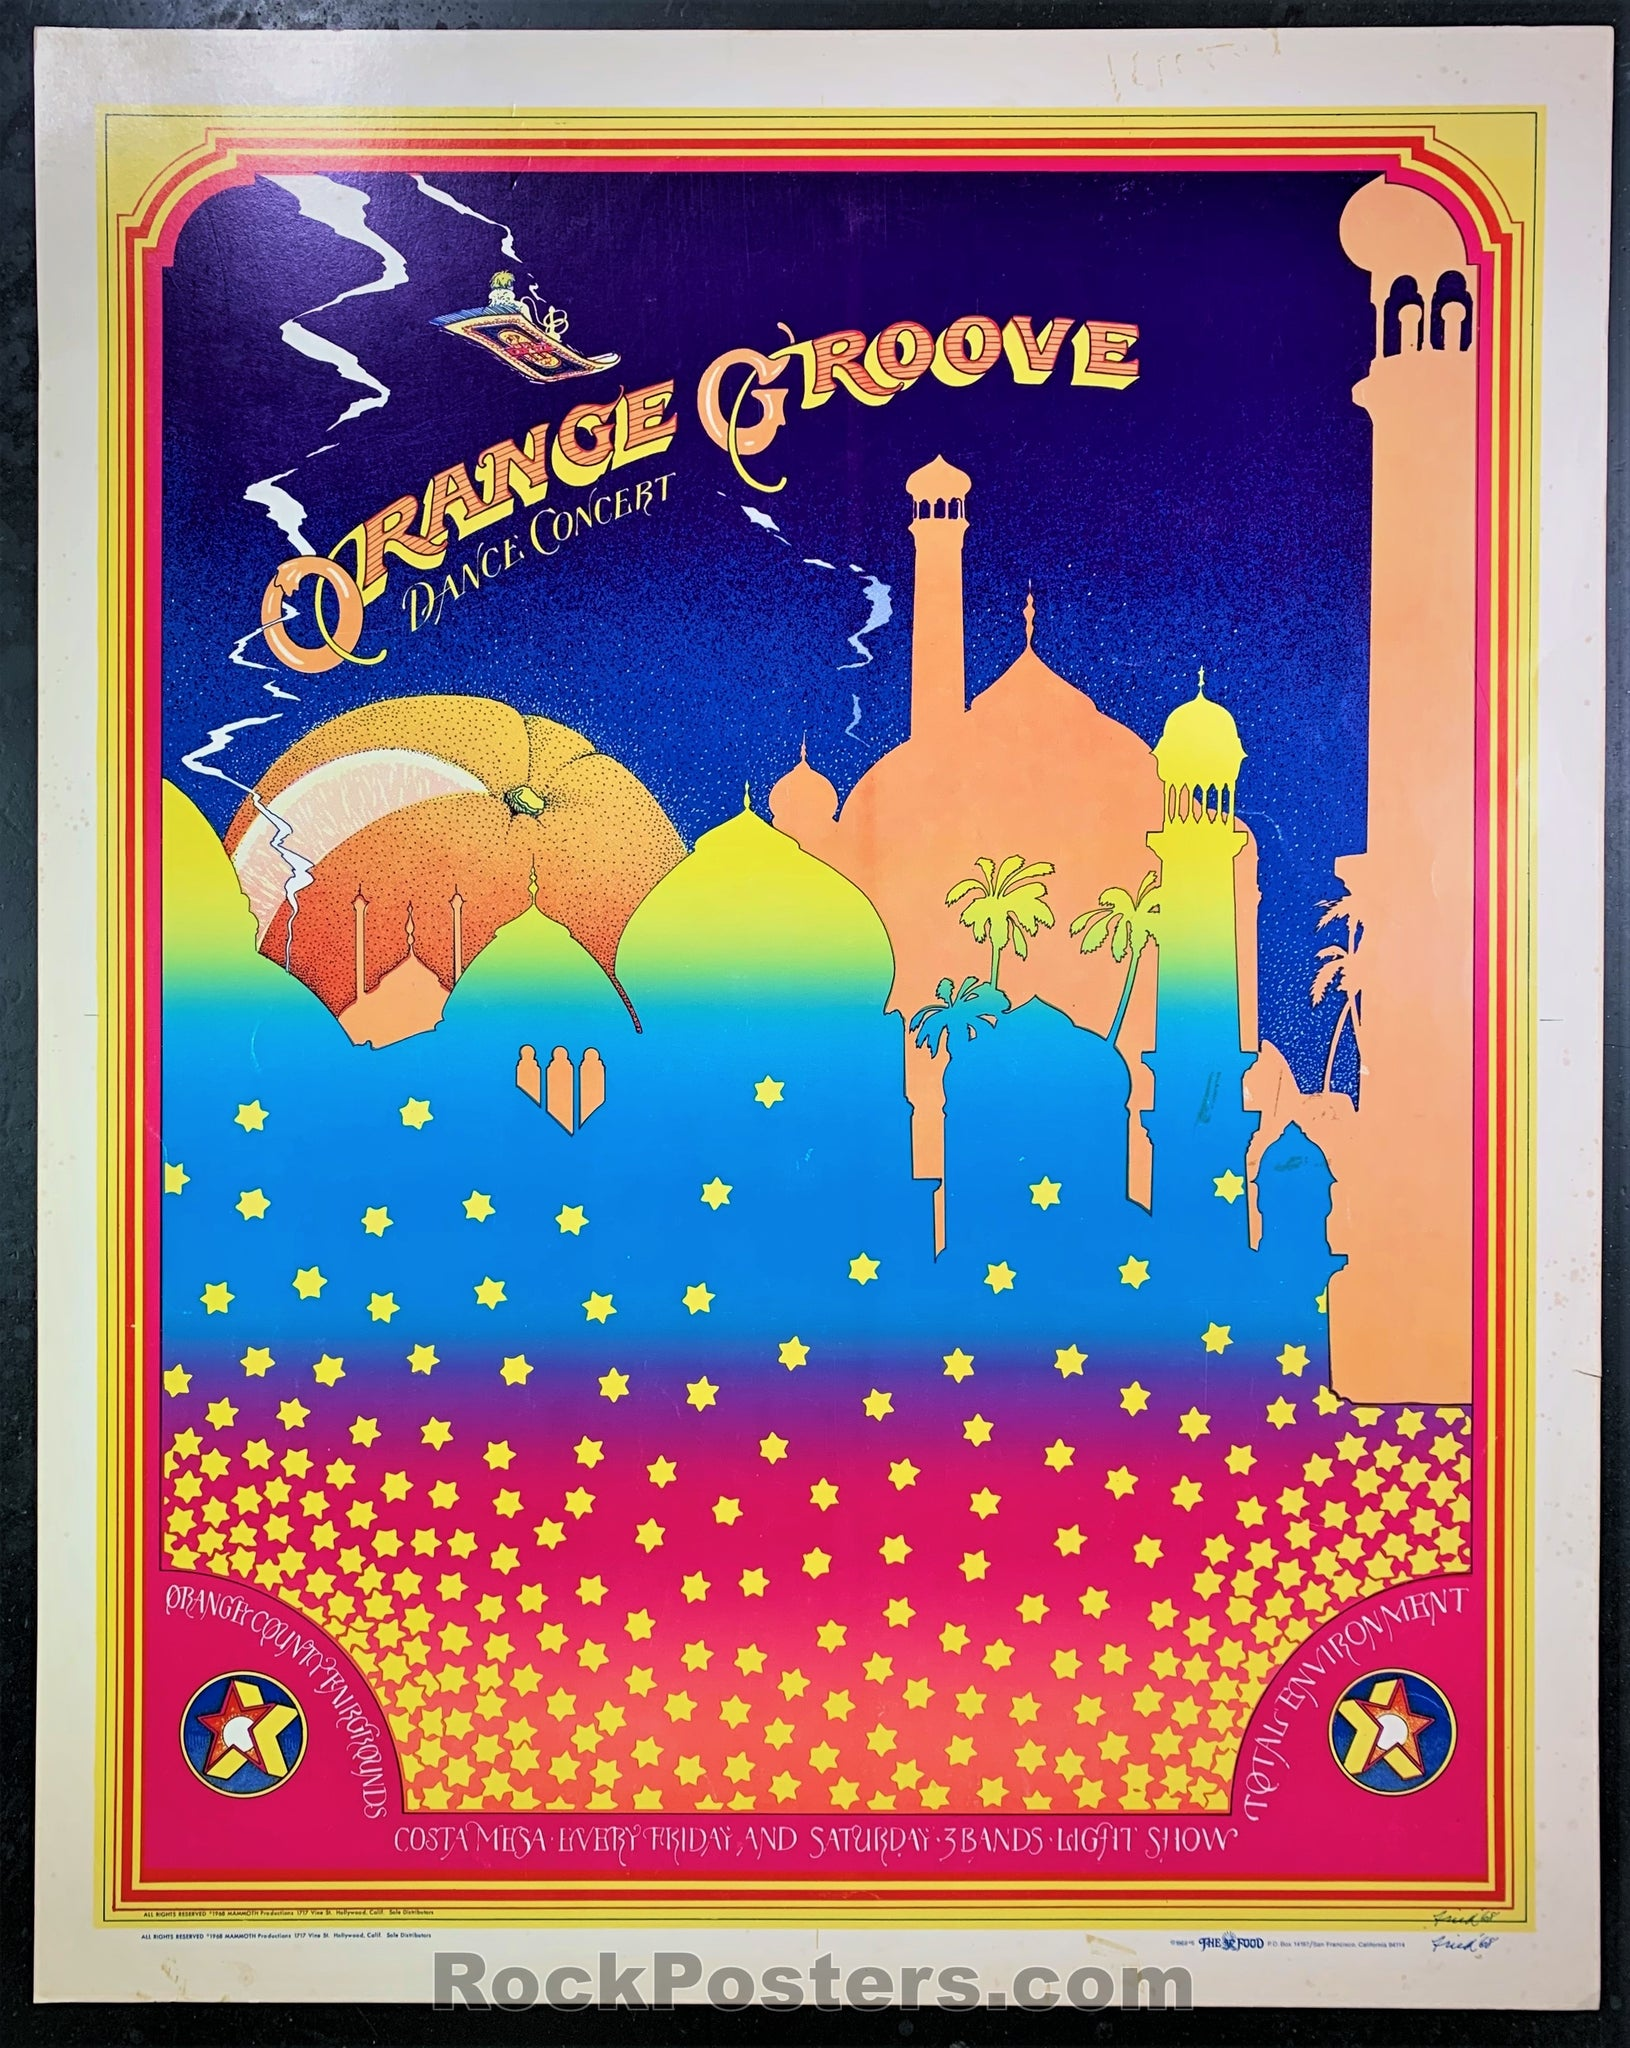 AUCTION - AOR 3.64 - Orange Groove 1968 - Bob Fried Poster - Costa Mesa - Condition - Excellent